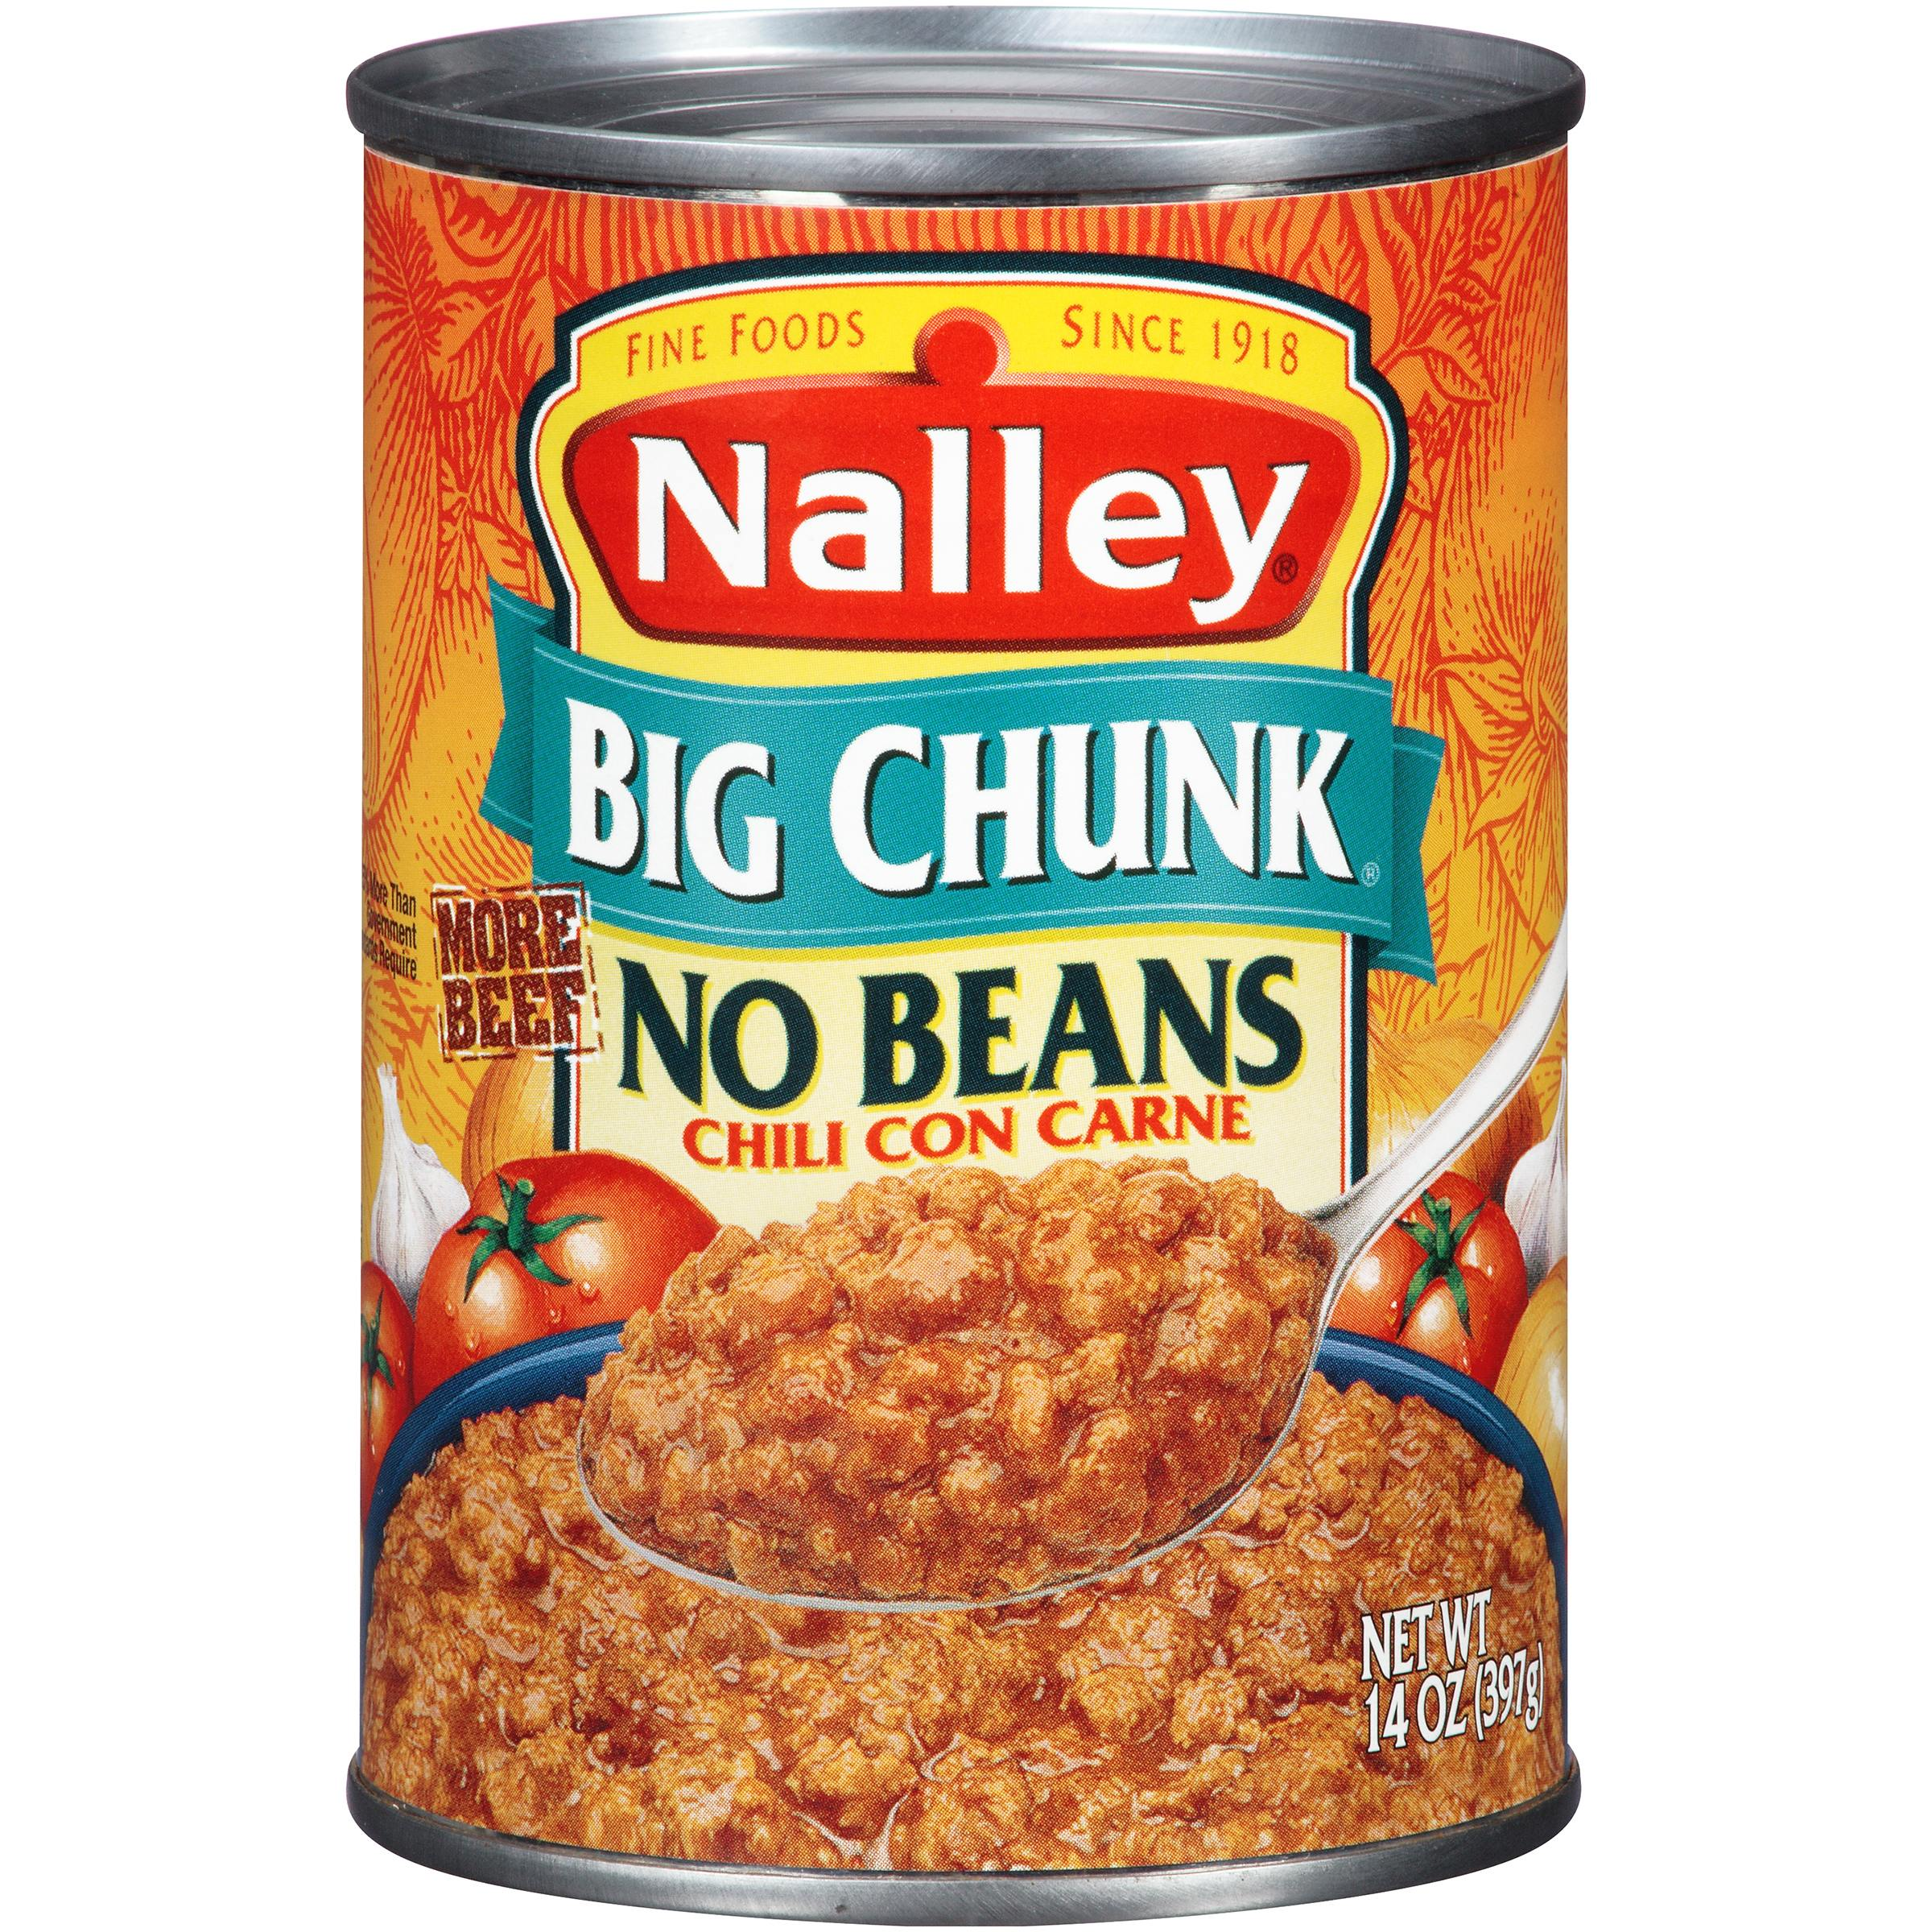 (6 Pack) Nalley Big Chunk Chili Con Carne With No Beans, 15 Oz